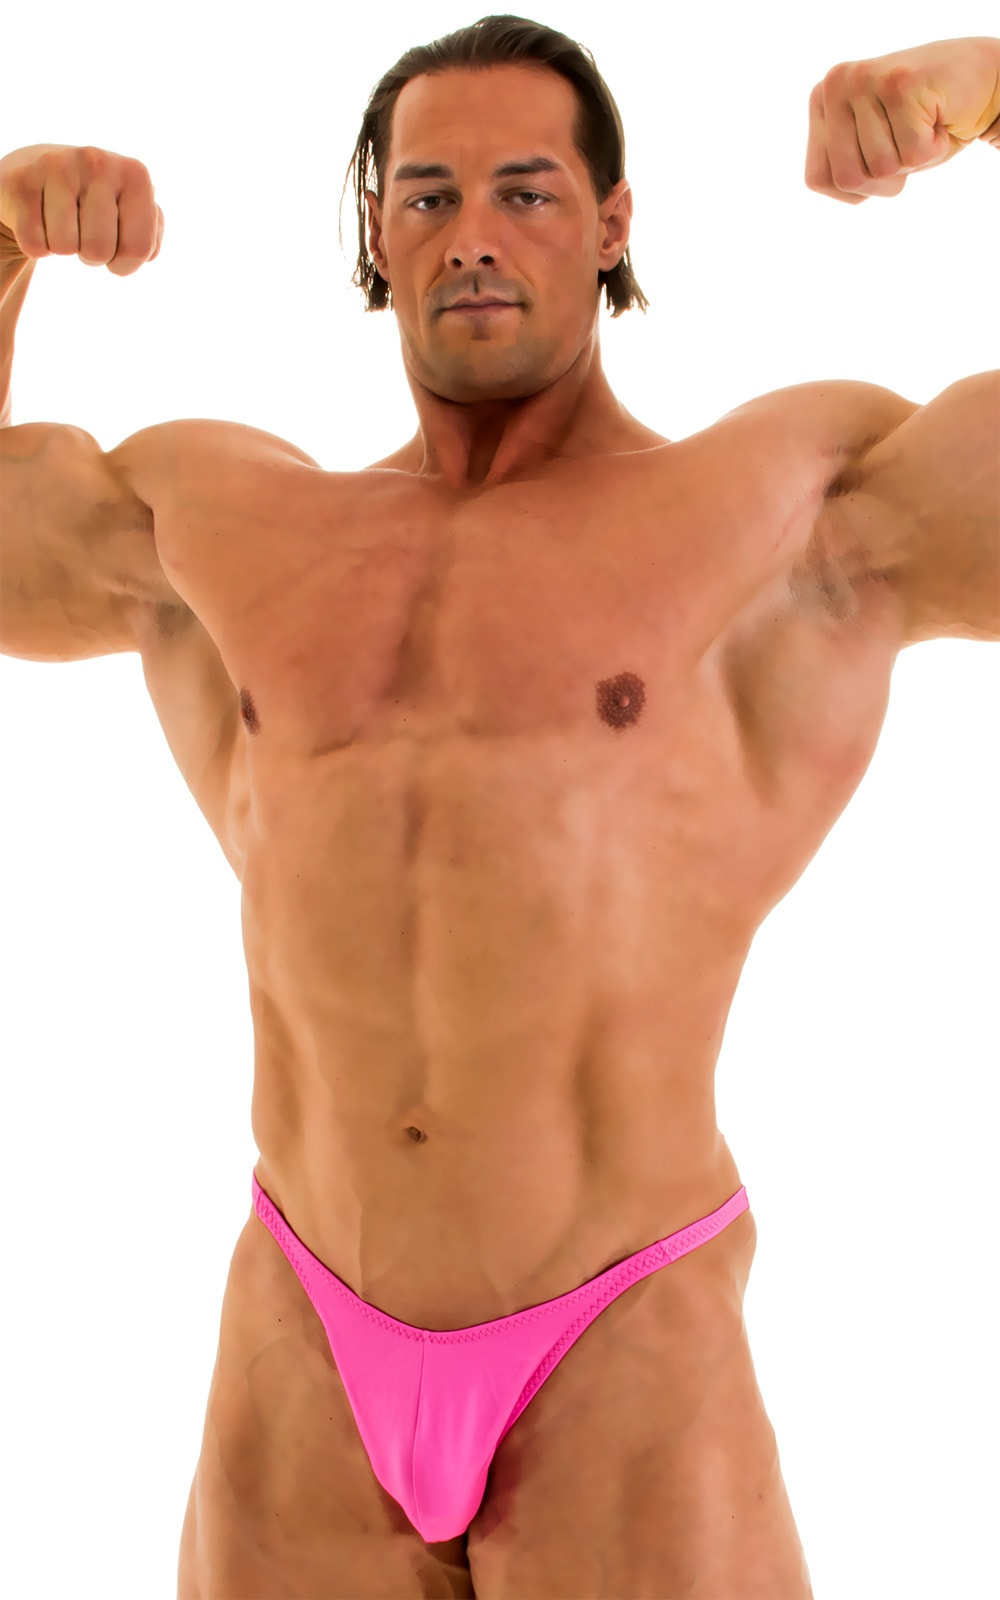 Fitted Pouch - Puckered Back - Posing Suit in Wet Look Hot Pink 5